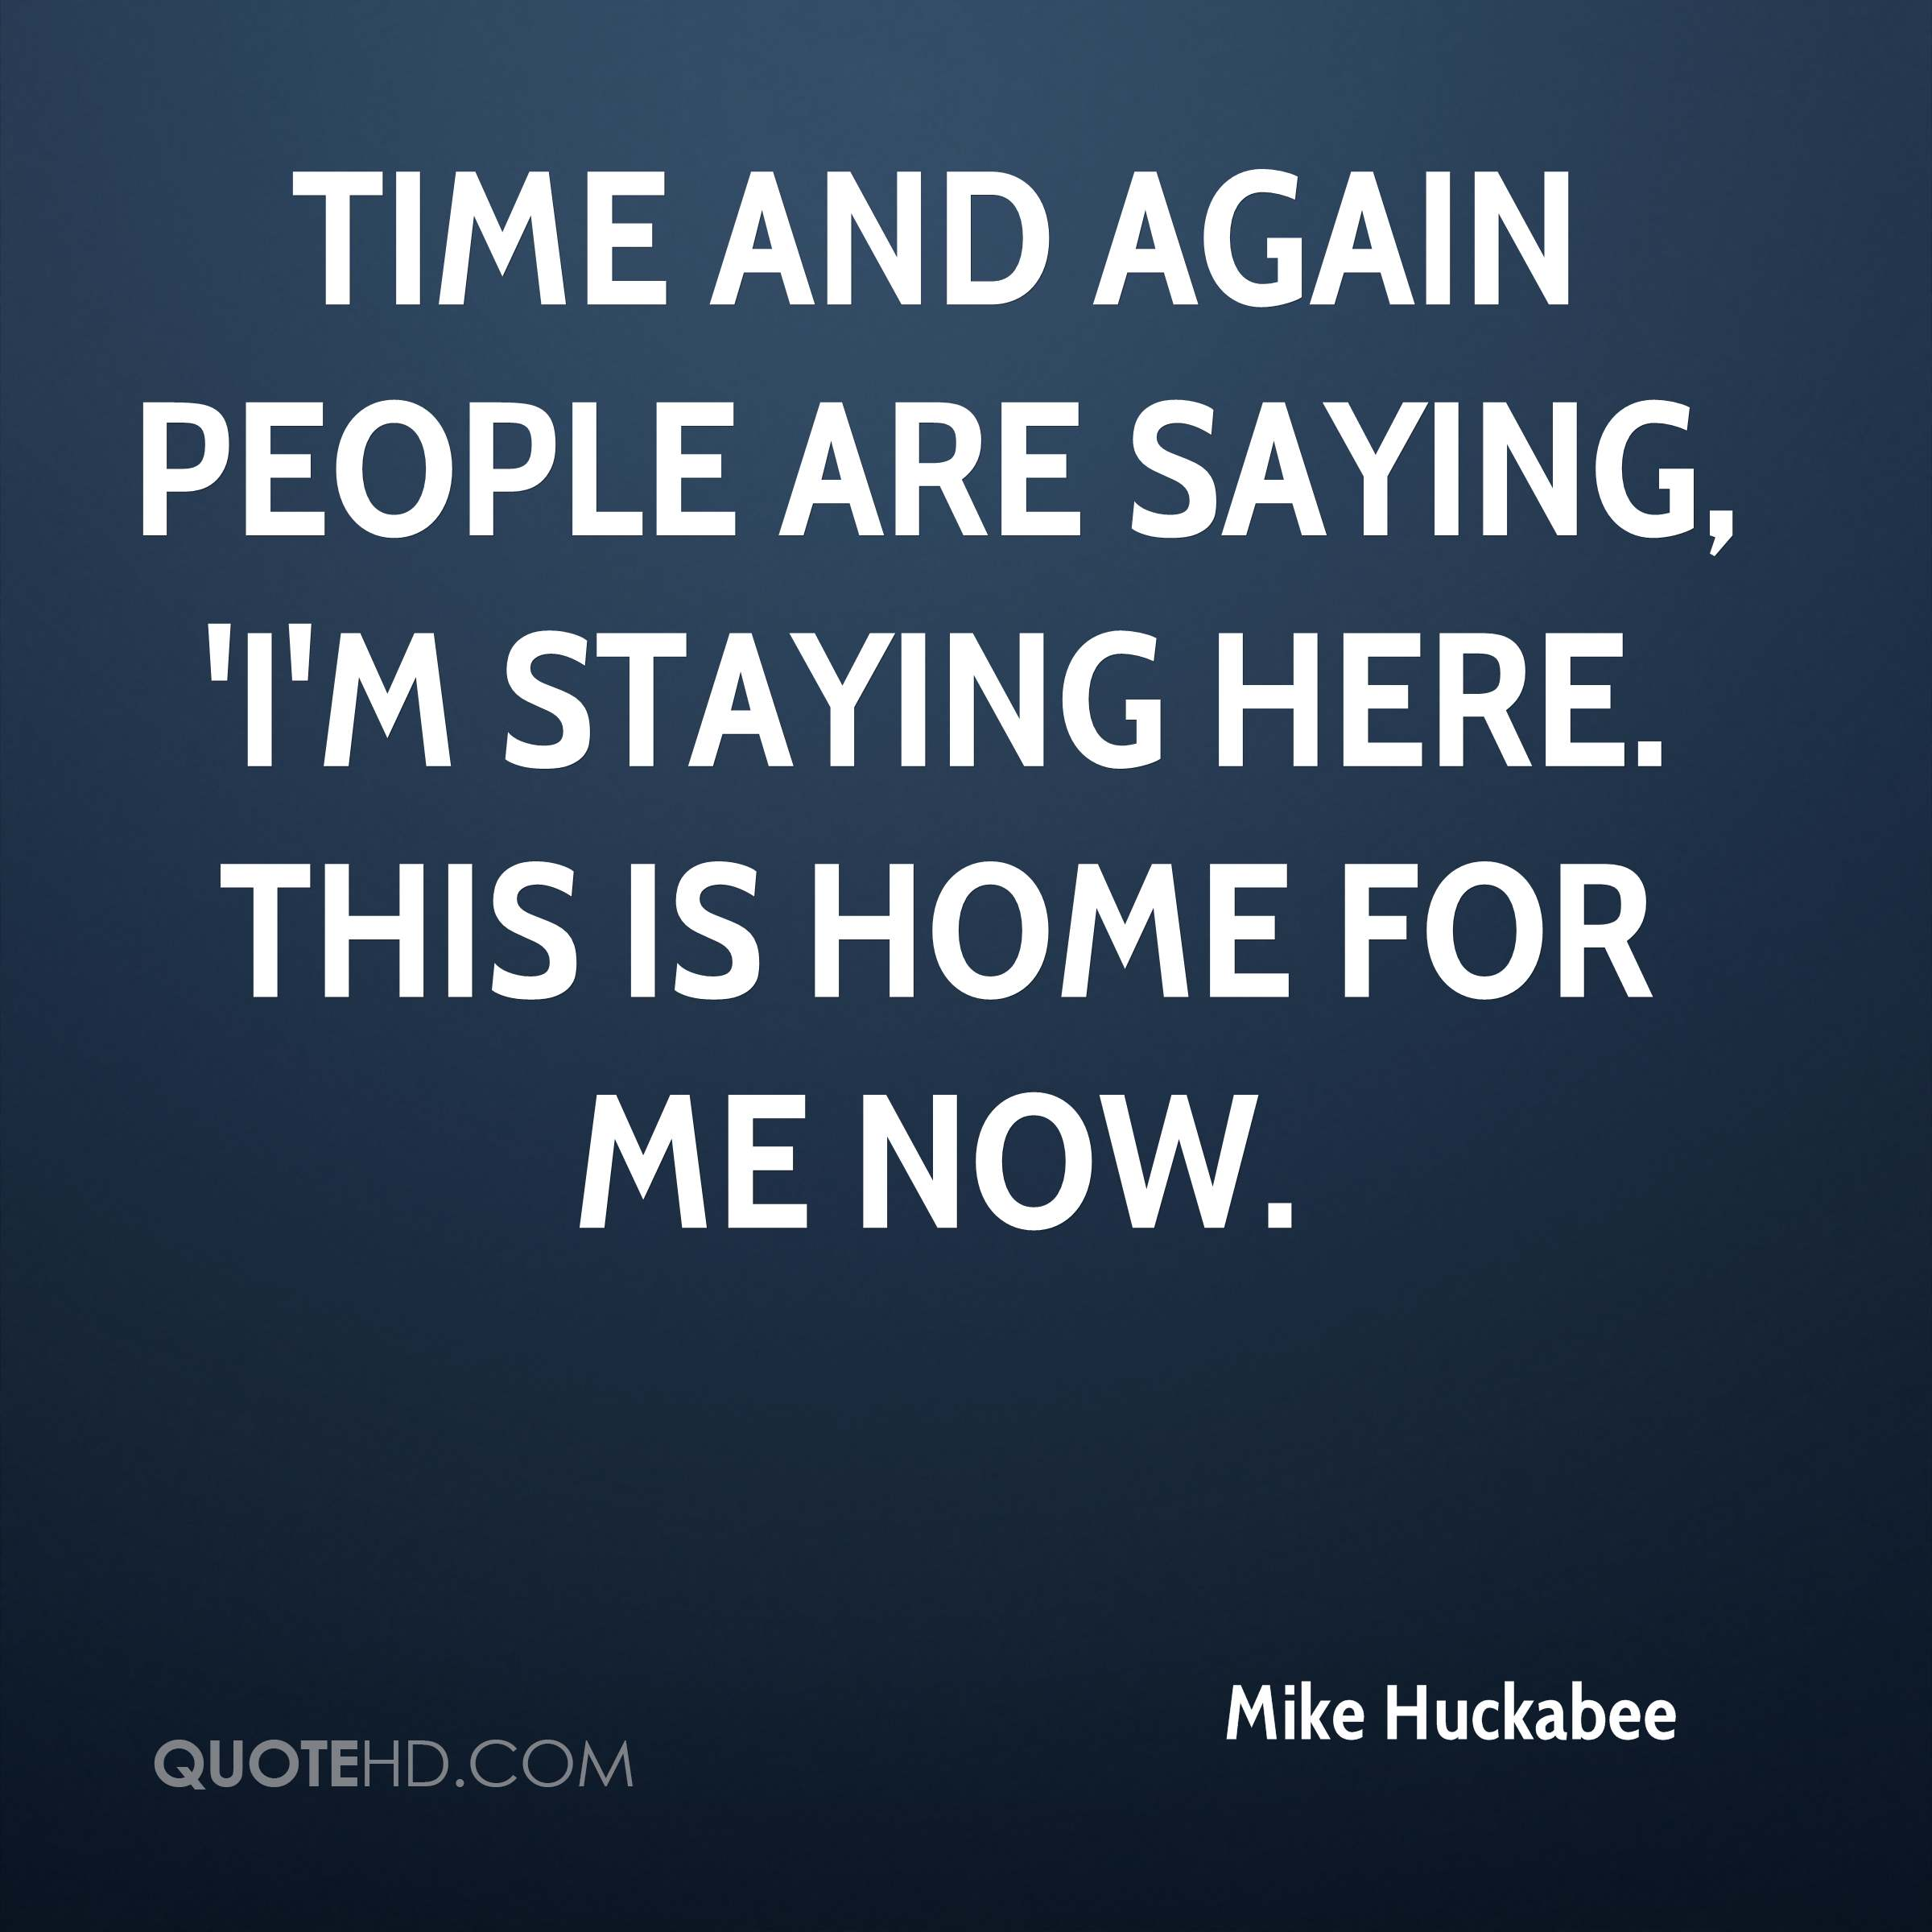 Time and again people are saying, 'I'm staying here. This is home for me now.